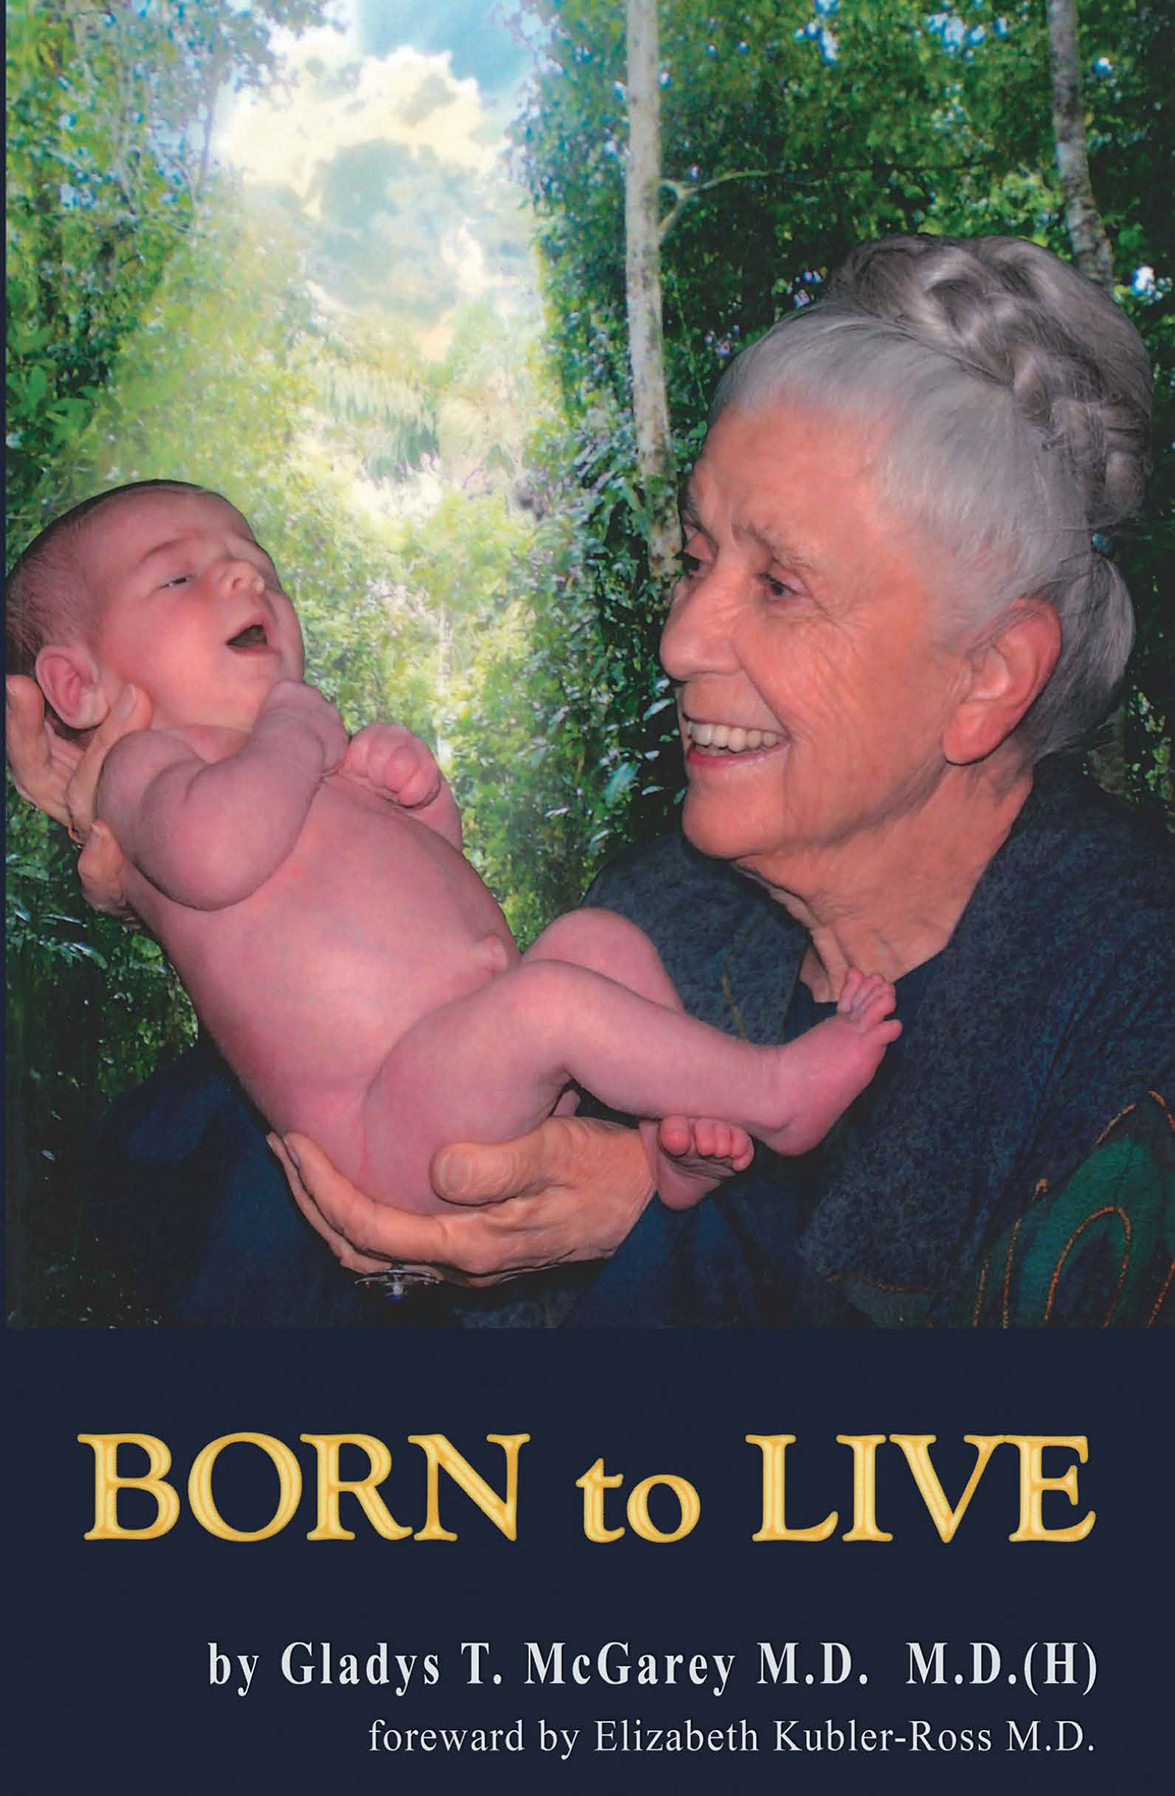 Dr._Gladys_book_born_to_live.jpg